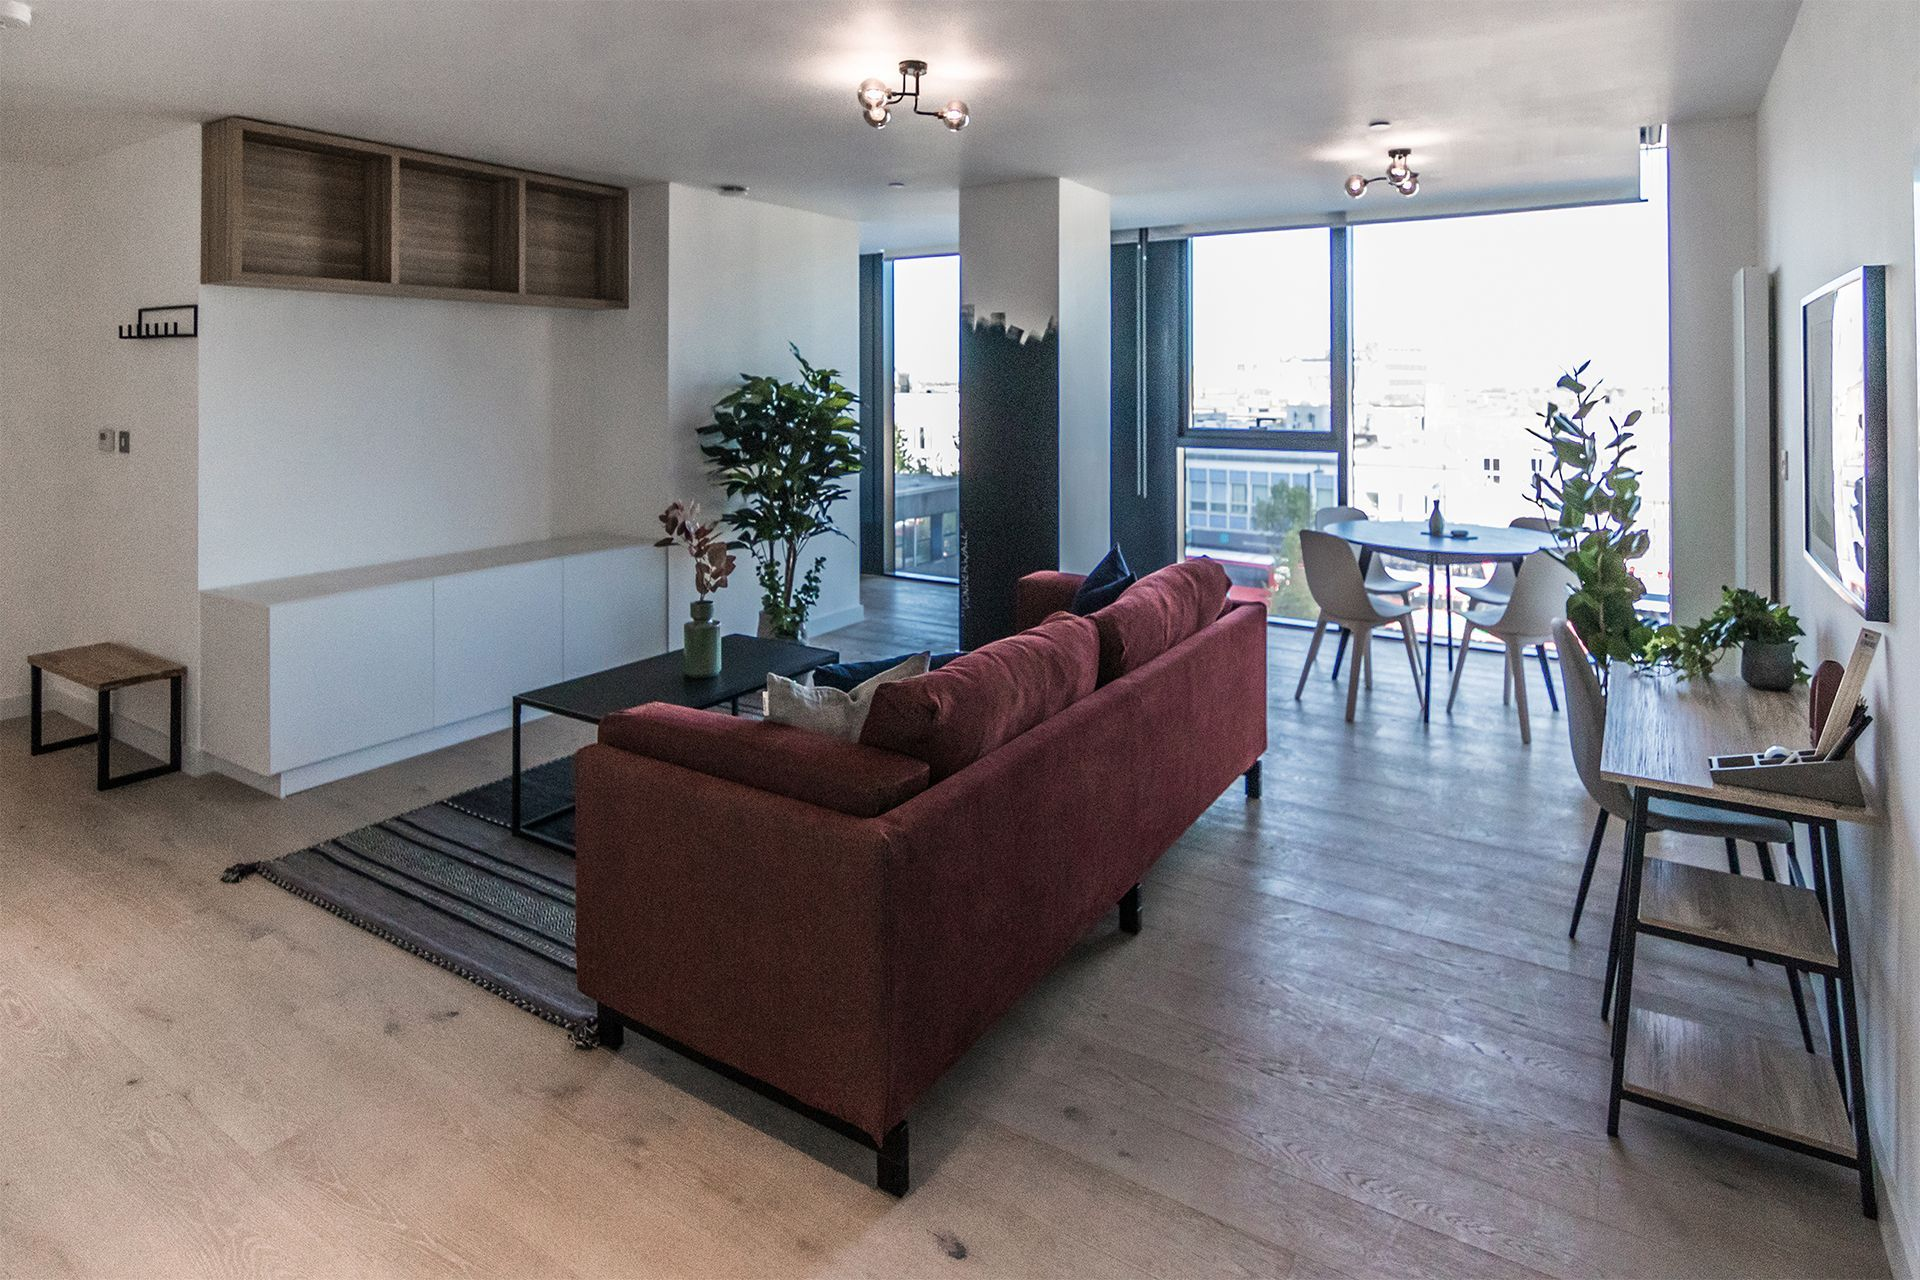 1 Bedroom apartment to rent in London HIL-HH-0303